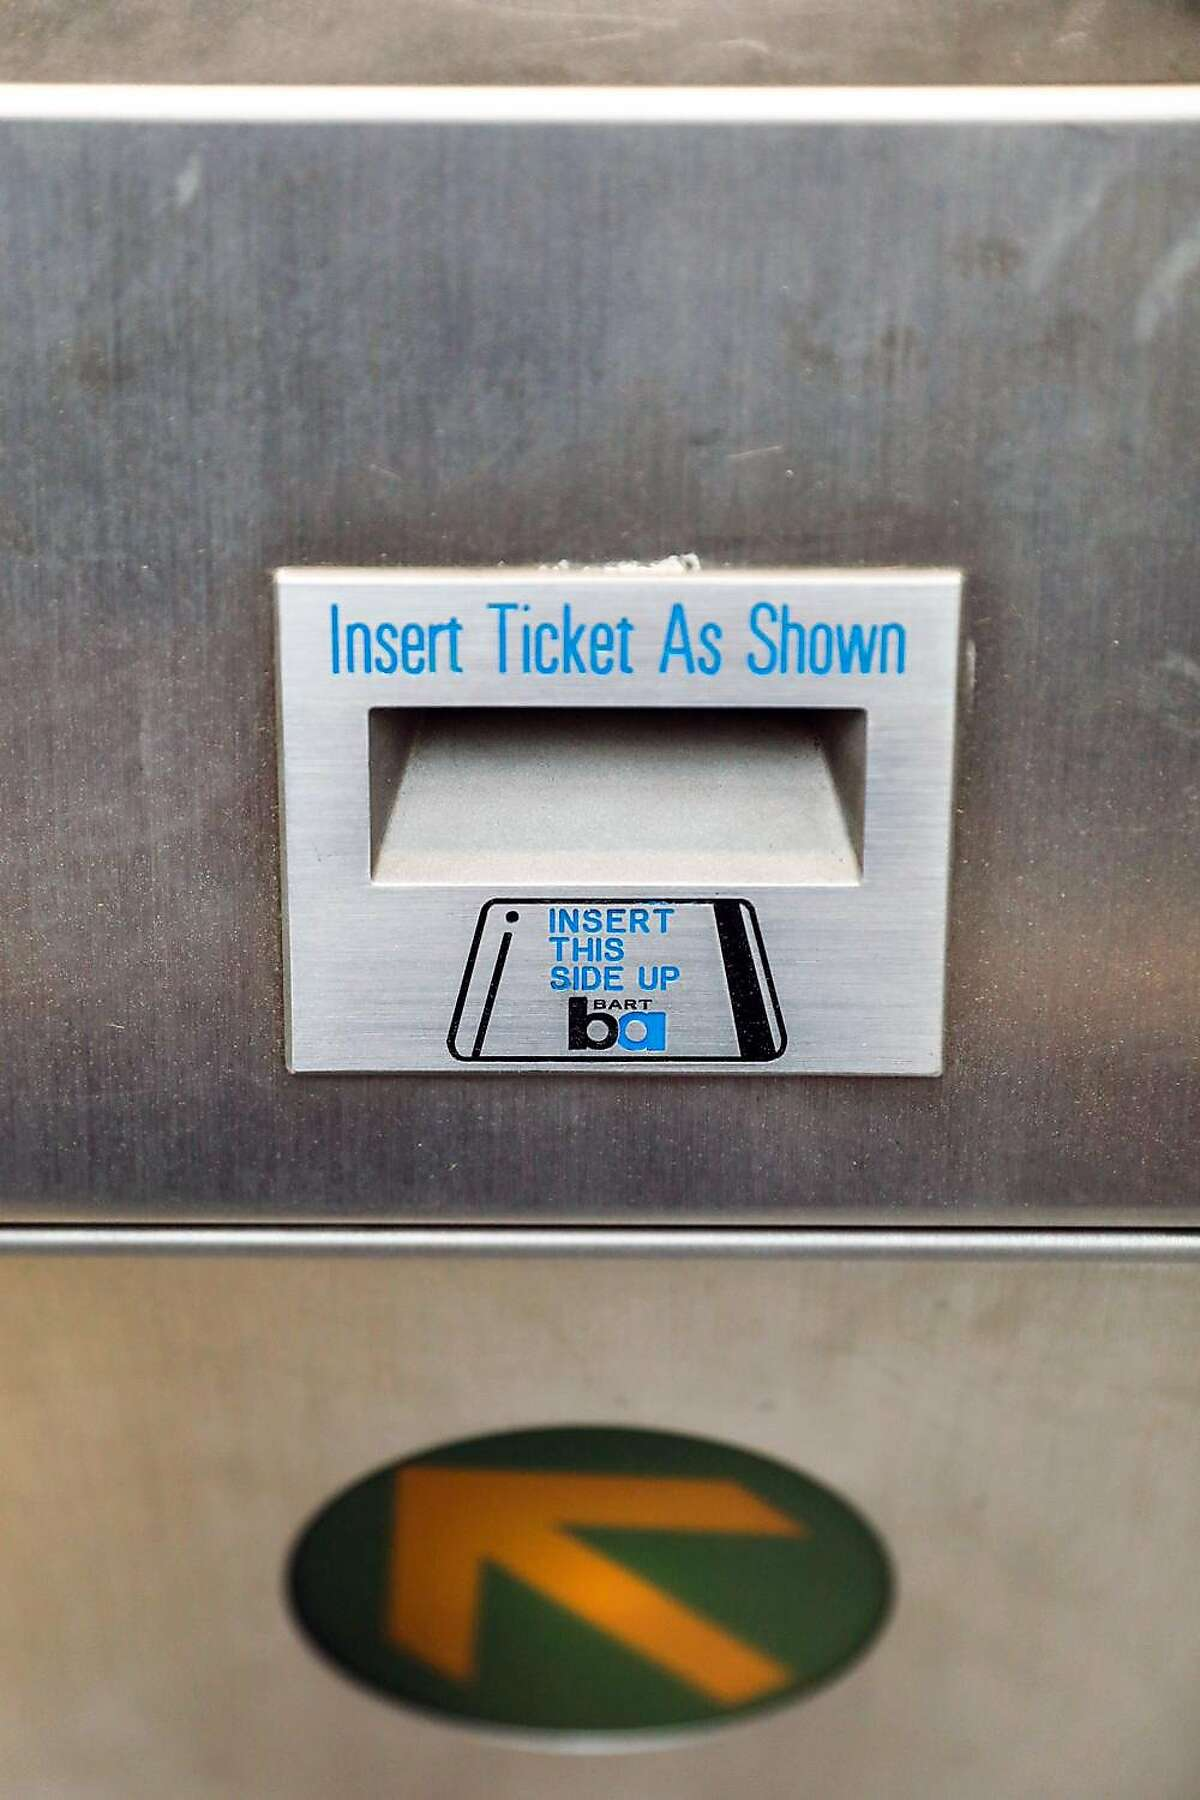 A turnstile at the new Milpitas BART station in Milpitas, California, on Wednesday, March 27, 2019.